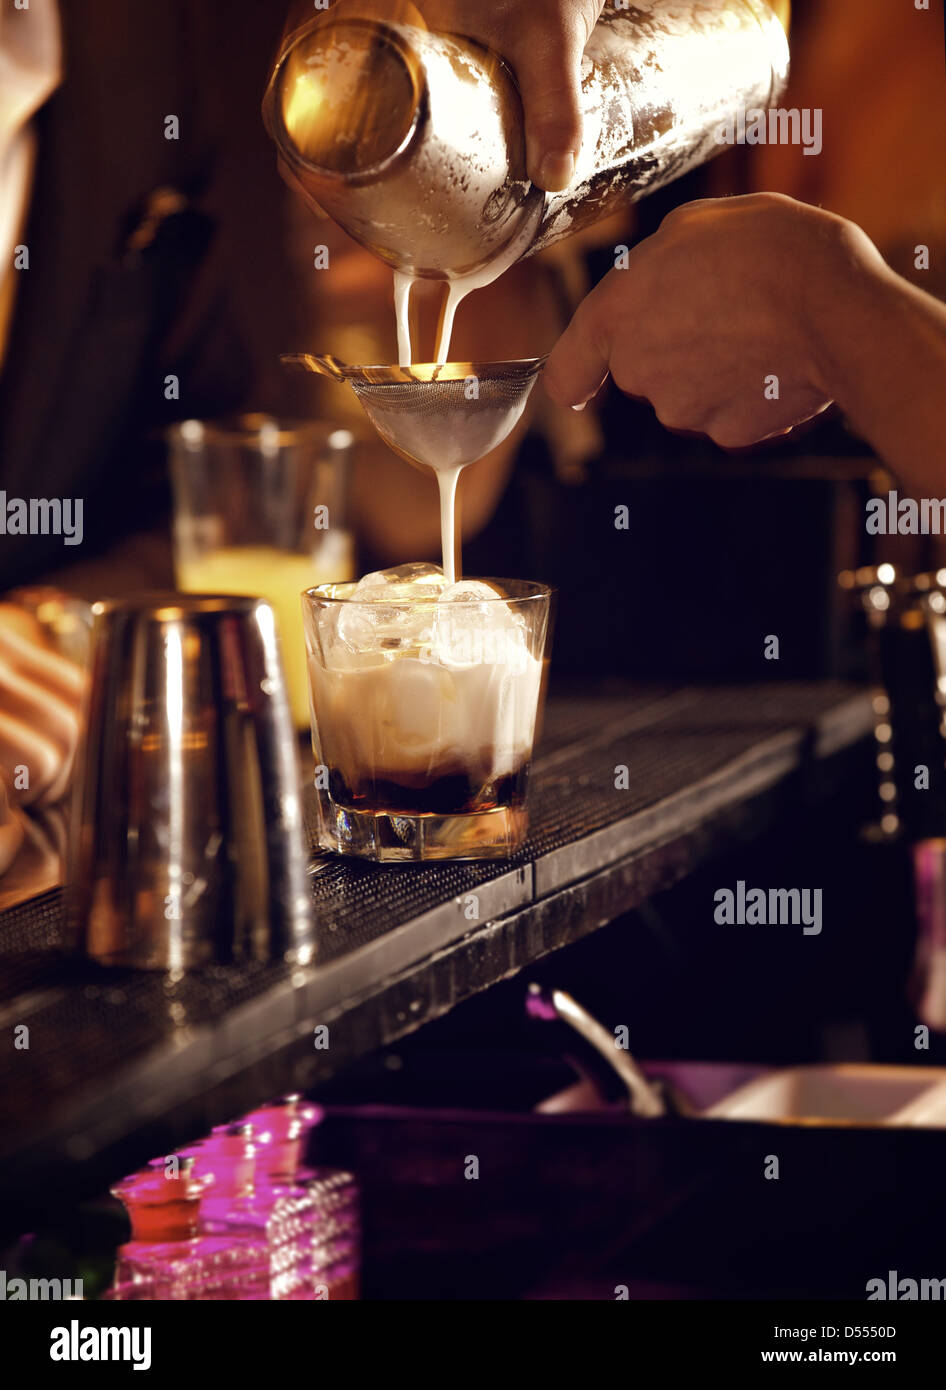 Cold cocktail drink being prepared  by the bartender - Stock Image